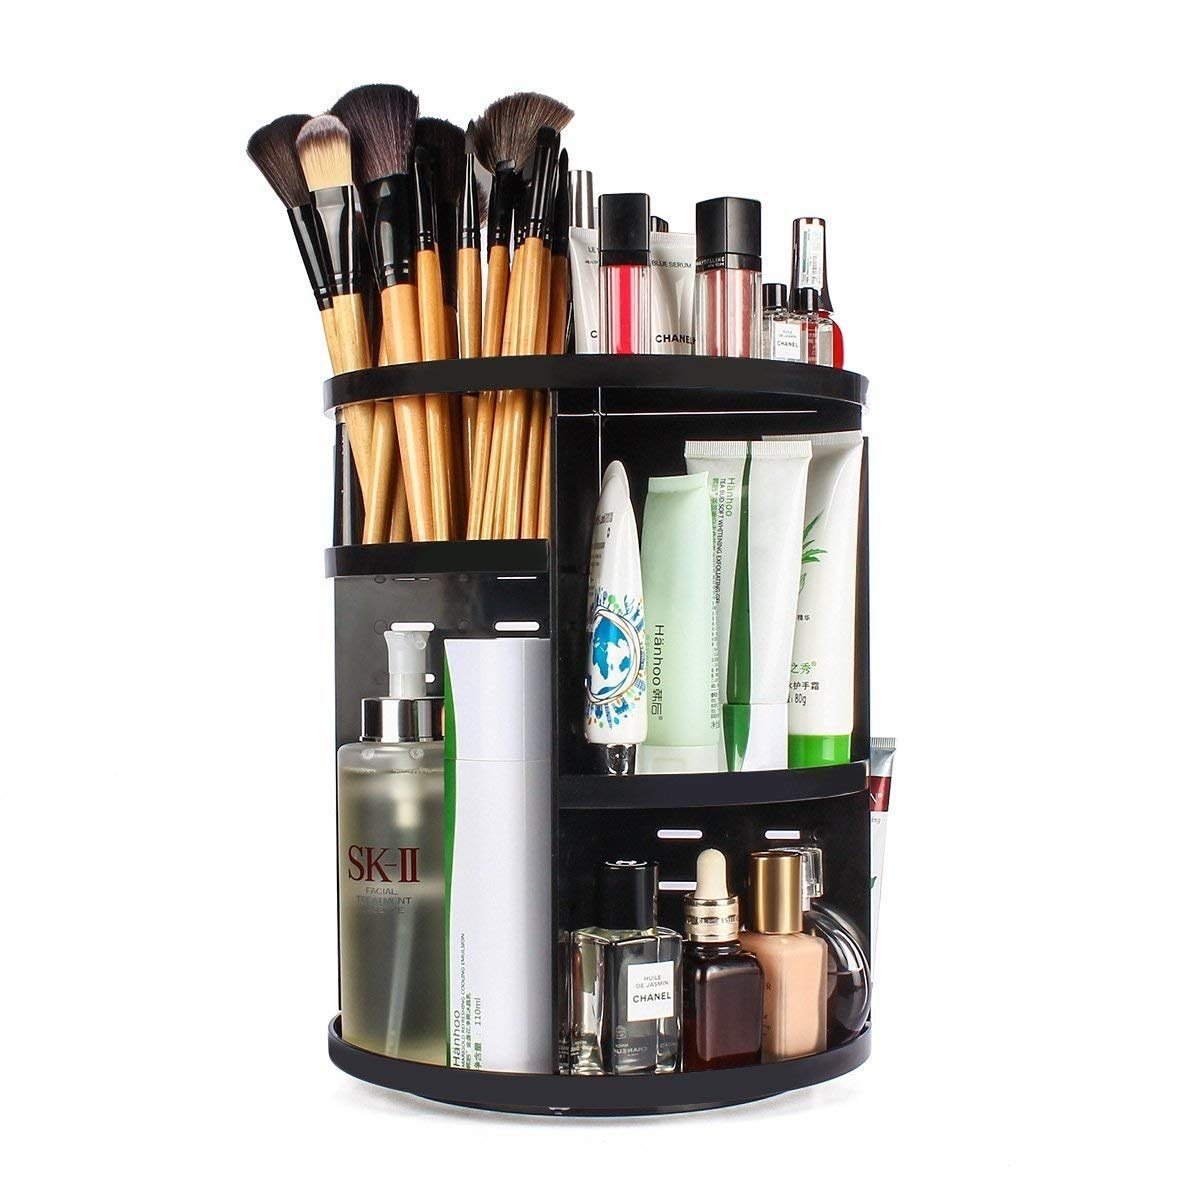 A rotating makeup organiser